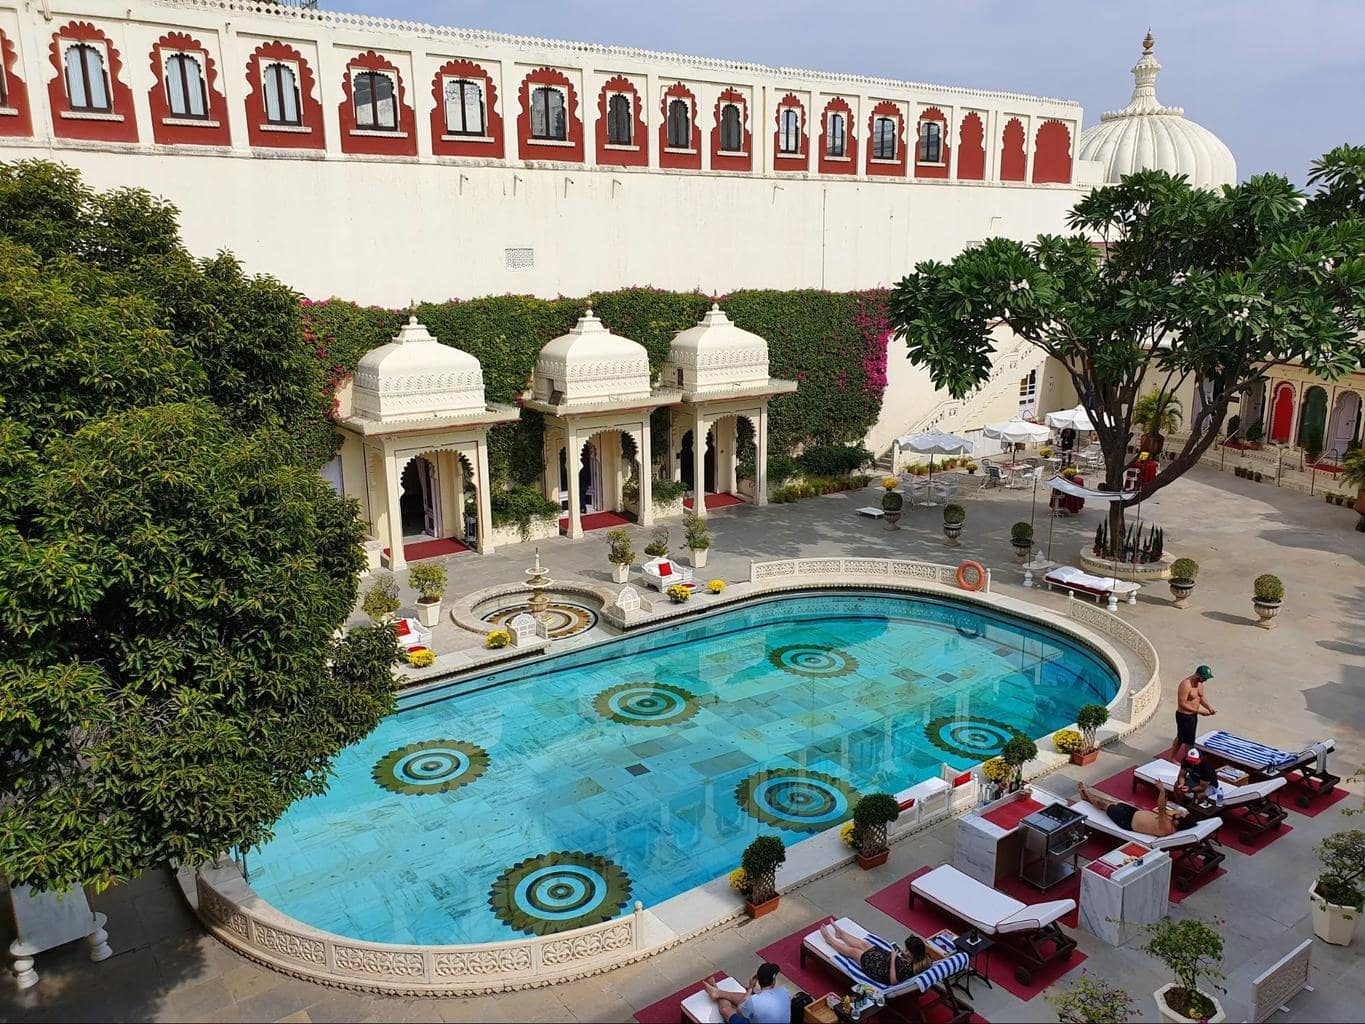 The pool at Shiv Niwas Palace